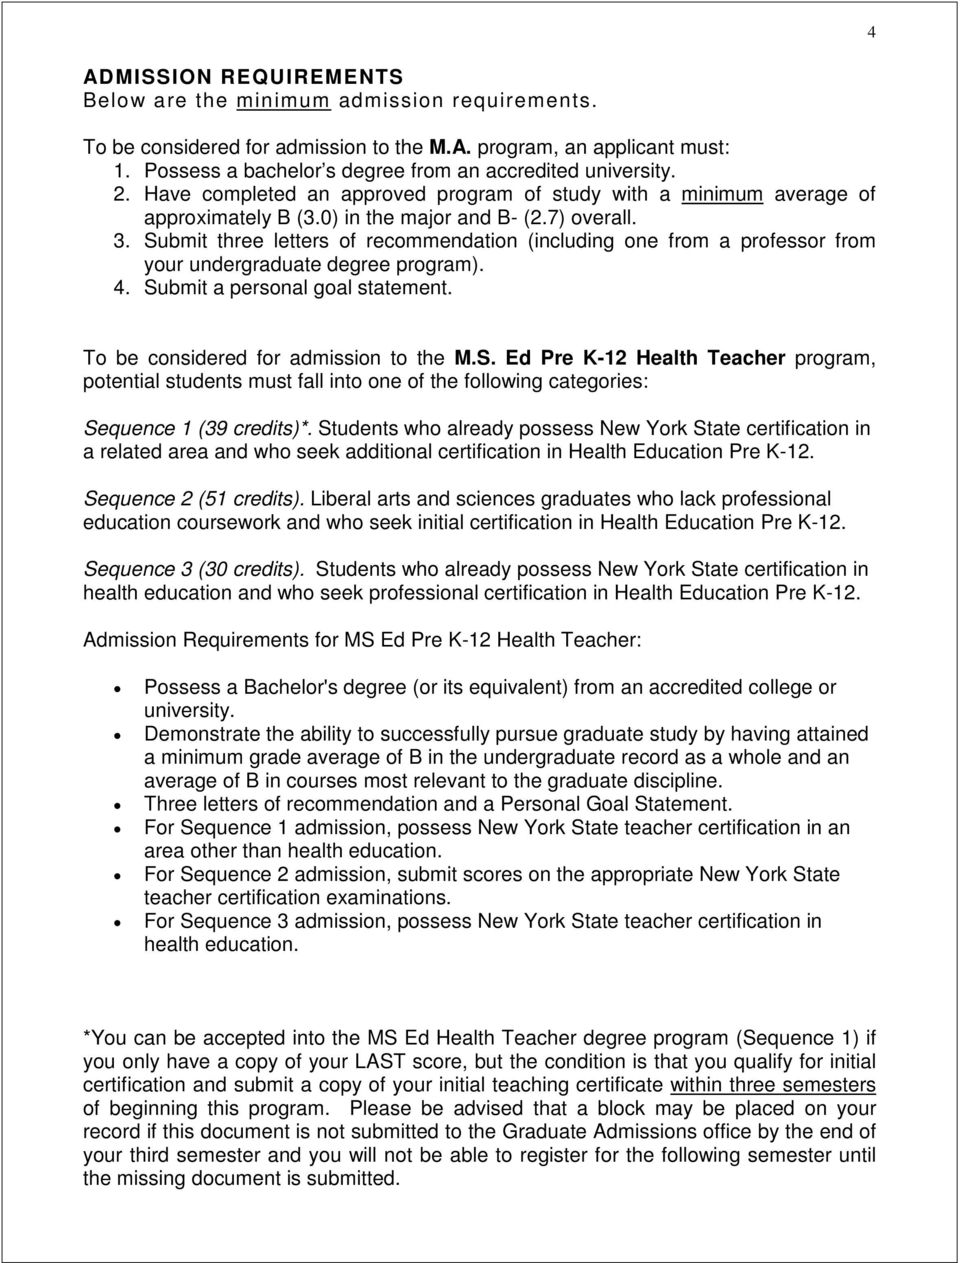 Submit three letters of recommendation (including one from a professor from your undergraduate degree program). 4. Submit a personal goal statement. To be considered for admission to the M.S. Ed Pre K-12 Health Teacher program, potential students must fall into one of the following categories: Sequence 1 (39 credits)*.